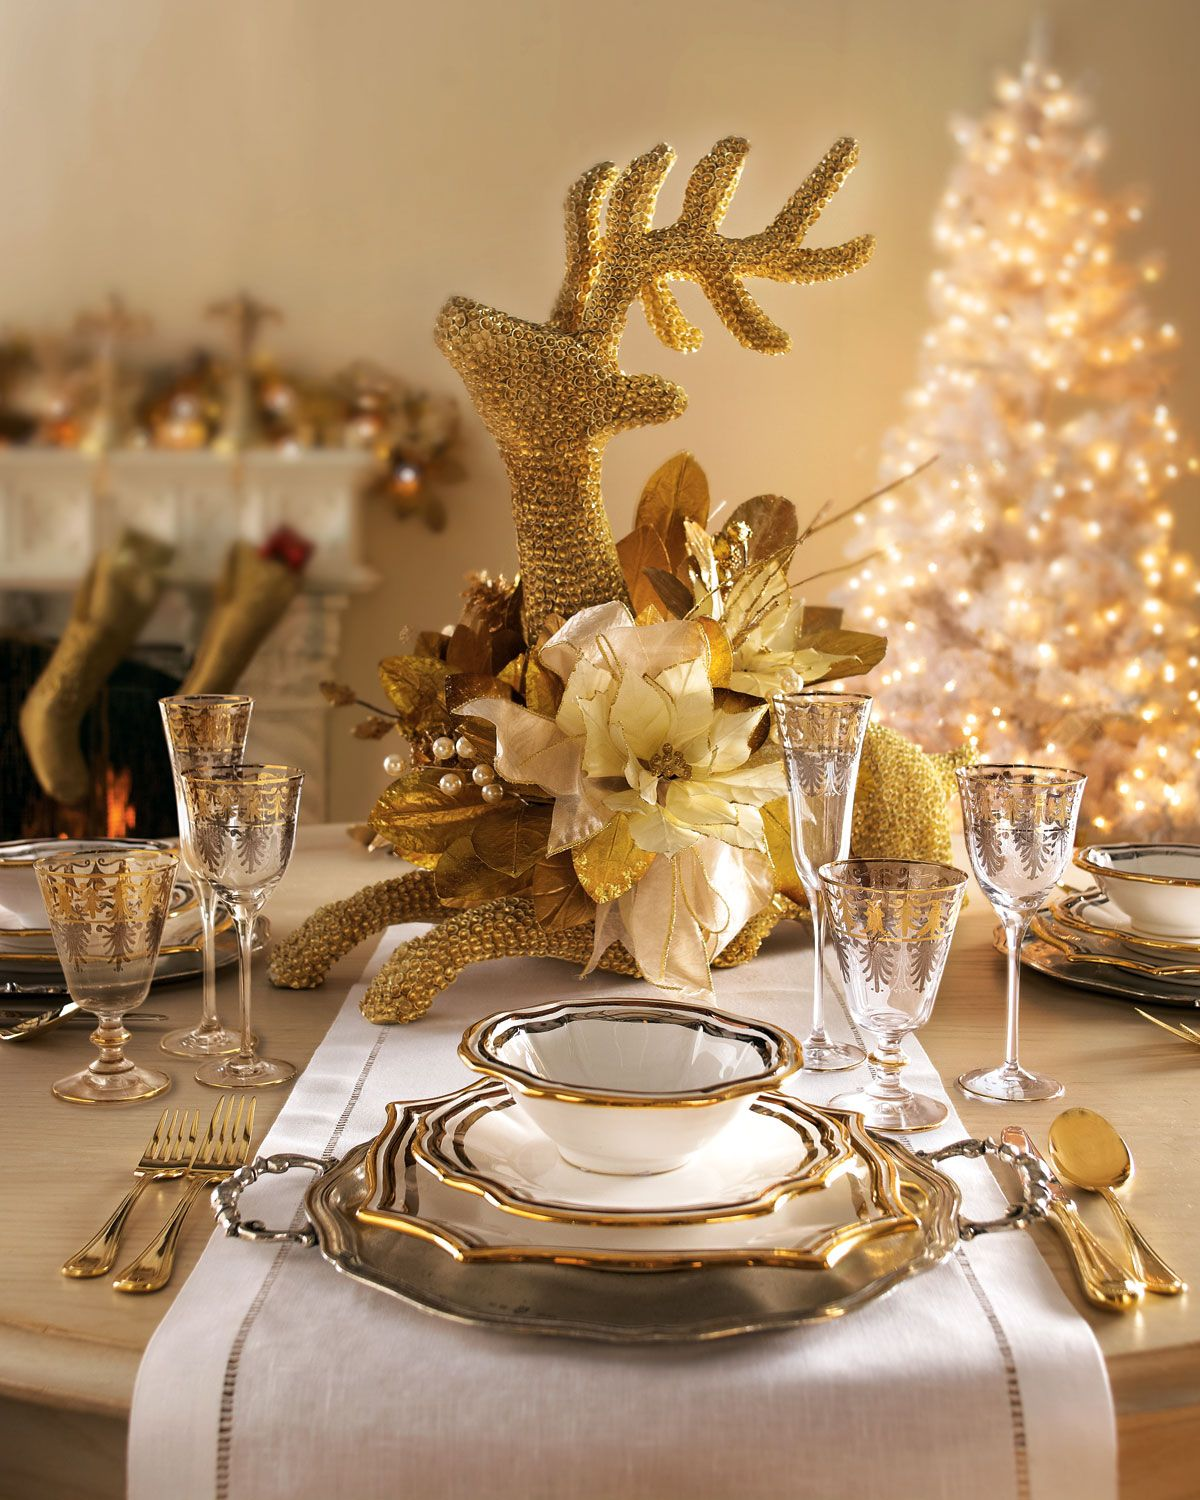 Christmas table decorations red and gold - Dining Tables Christmas Table Settings Red And Gold